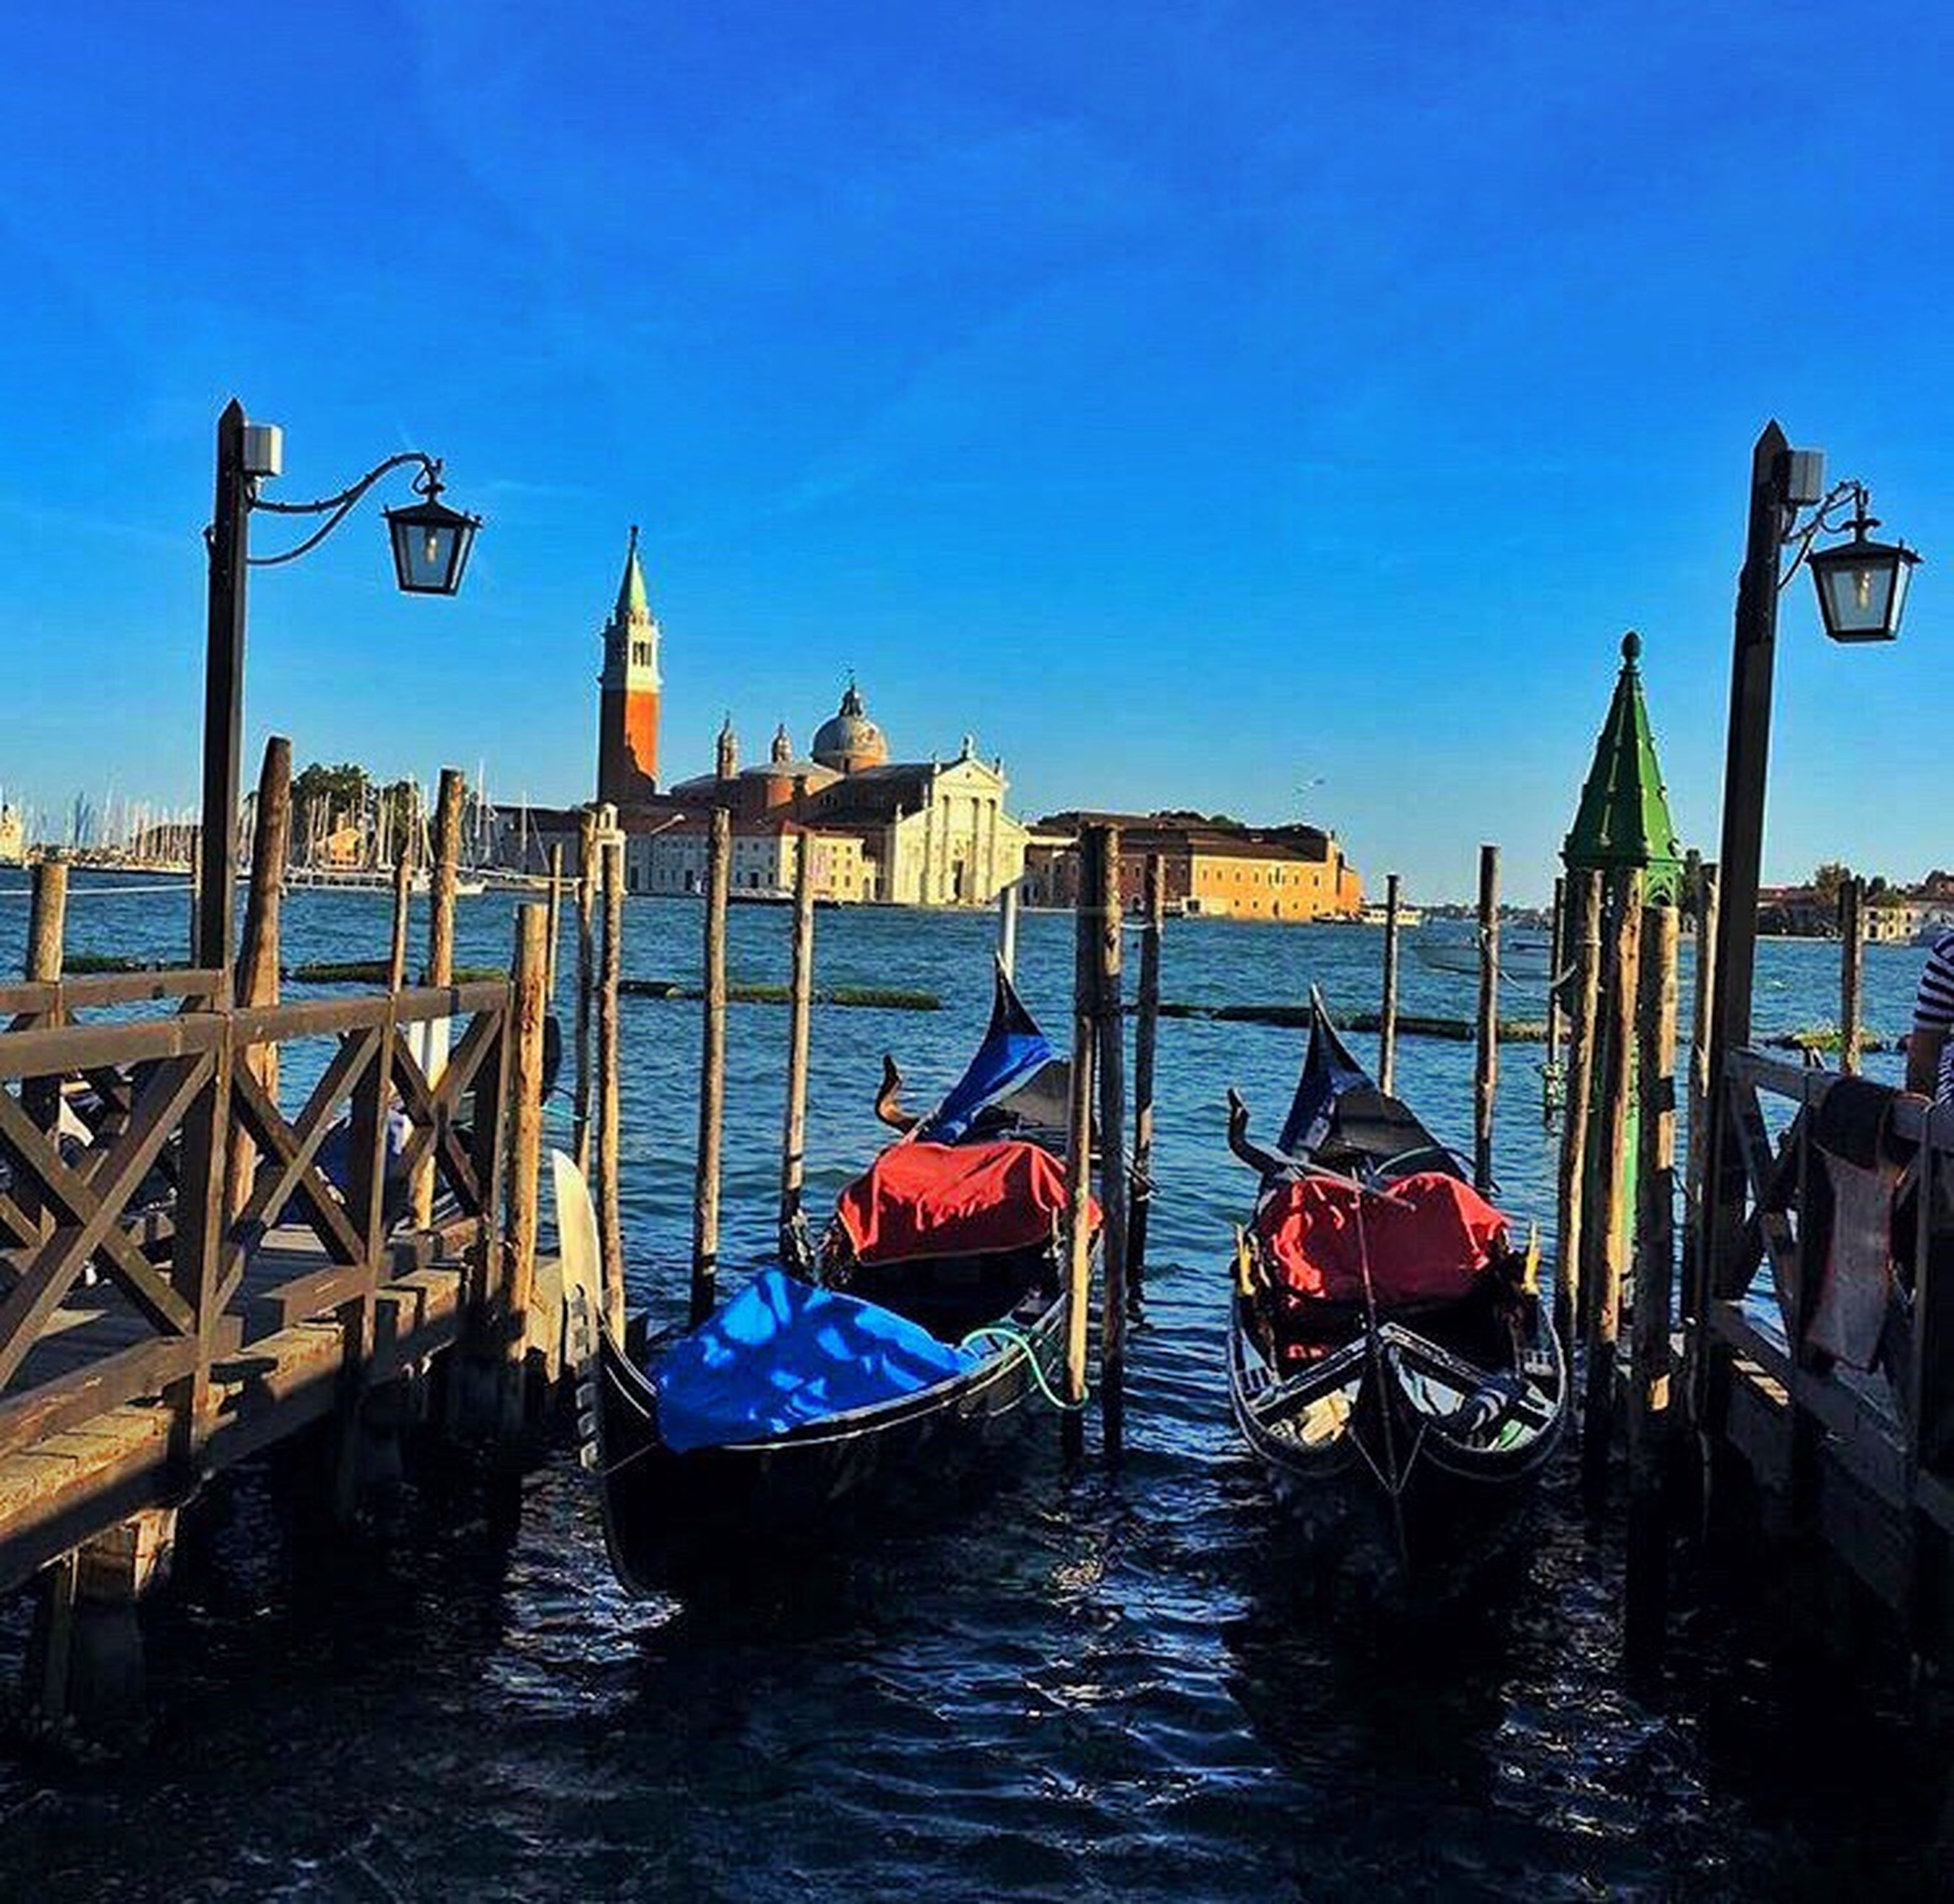 nautical vessel, boat, transportation, water, mode of transport, blue, waterfront, wooden post, culture, rippled, gondola - traditional boat, clear sky, river, multi colored, canal, in a row, sea, international landmark, tourism, tranquility, sky, famous place, day, scenics, nature, outdoors, tranquil scene